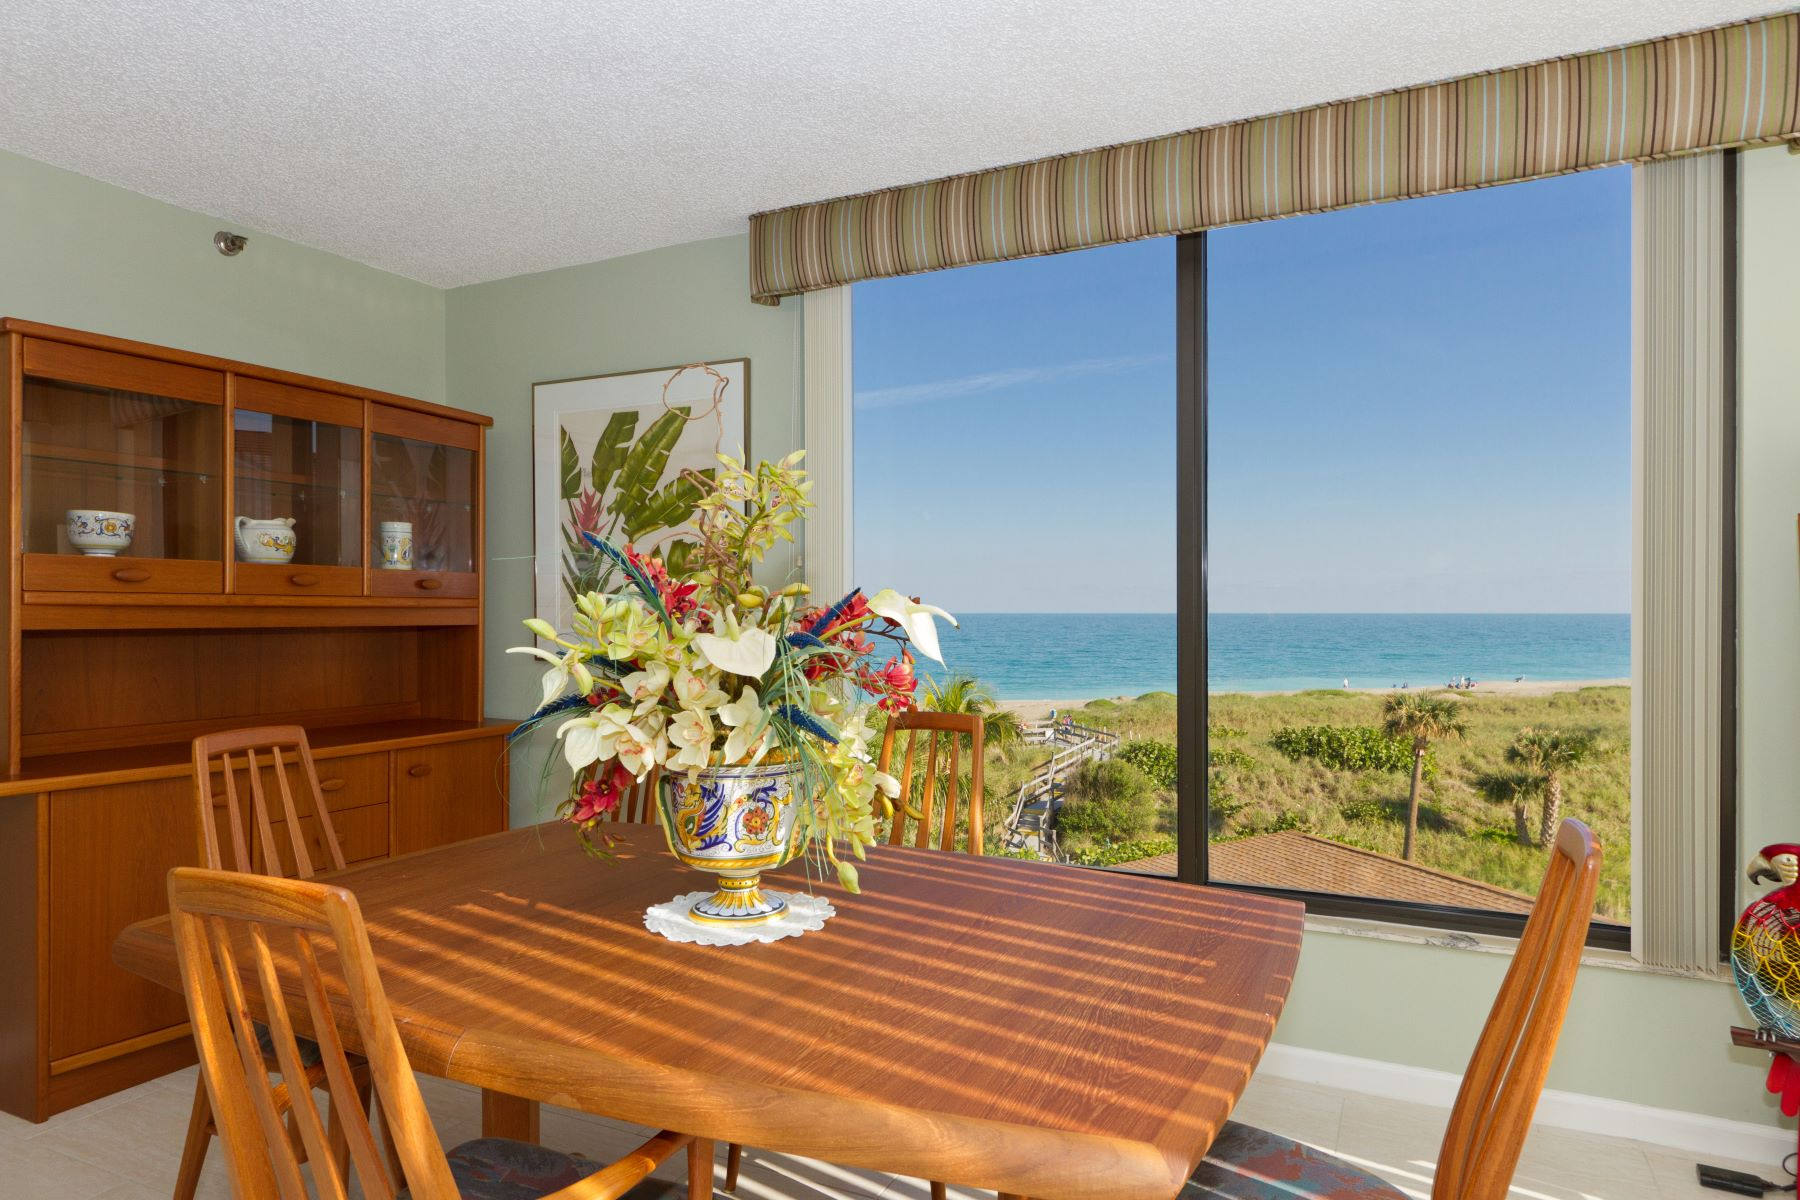 Property for Sale at True Resort-Style Living 2400 S Ocean Drive 8144 Hutchinson Island, Florida 34949 United States